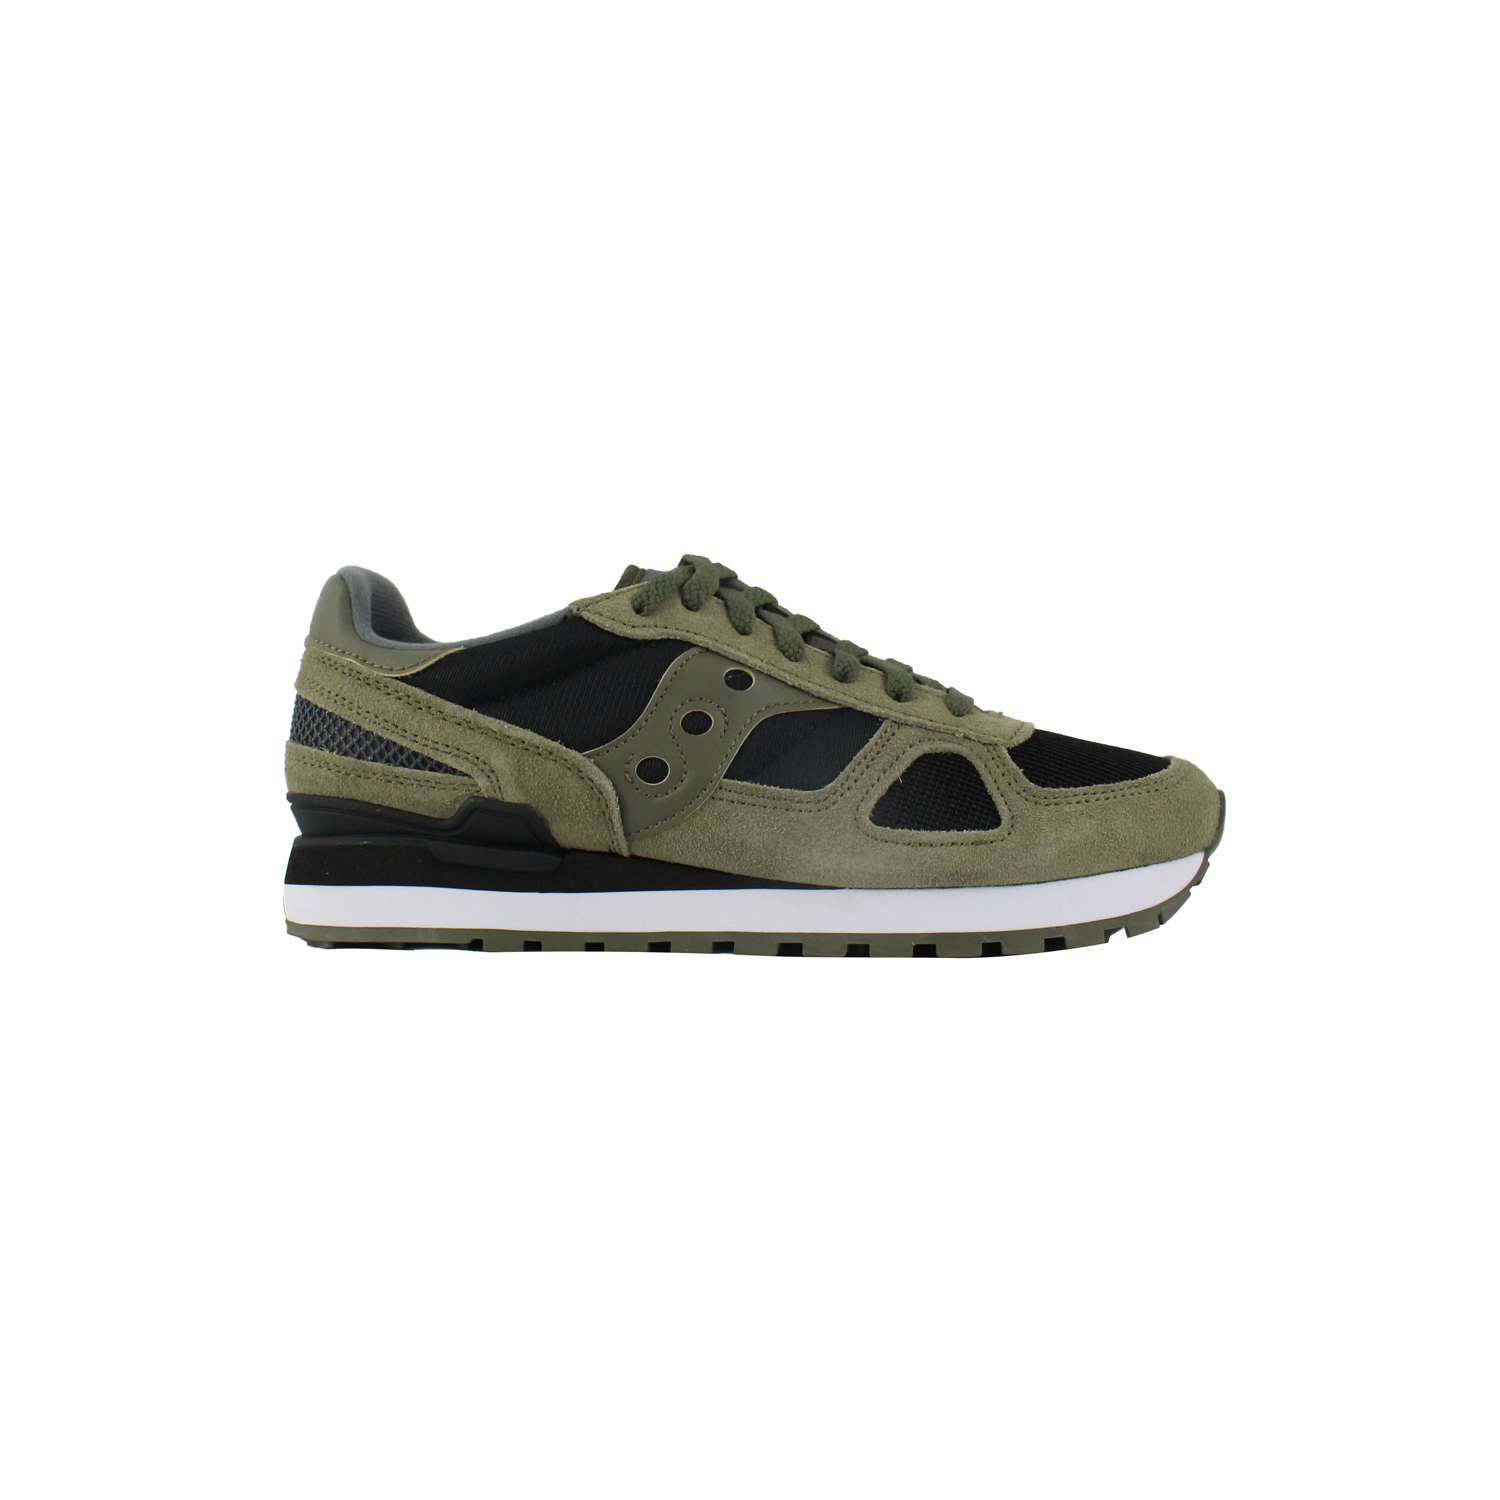 SAUCONY SHADOW ORIGINAL CL olive black sneakers (SHADOW S2108 655)